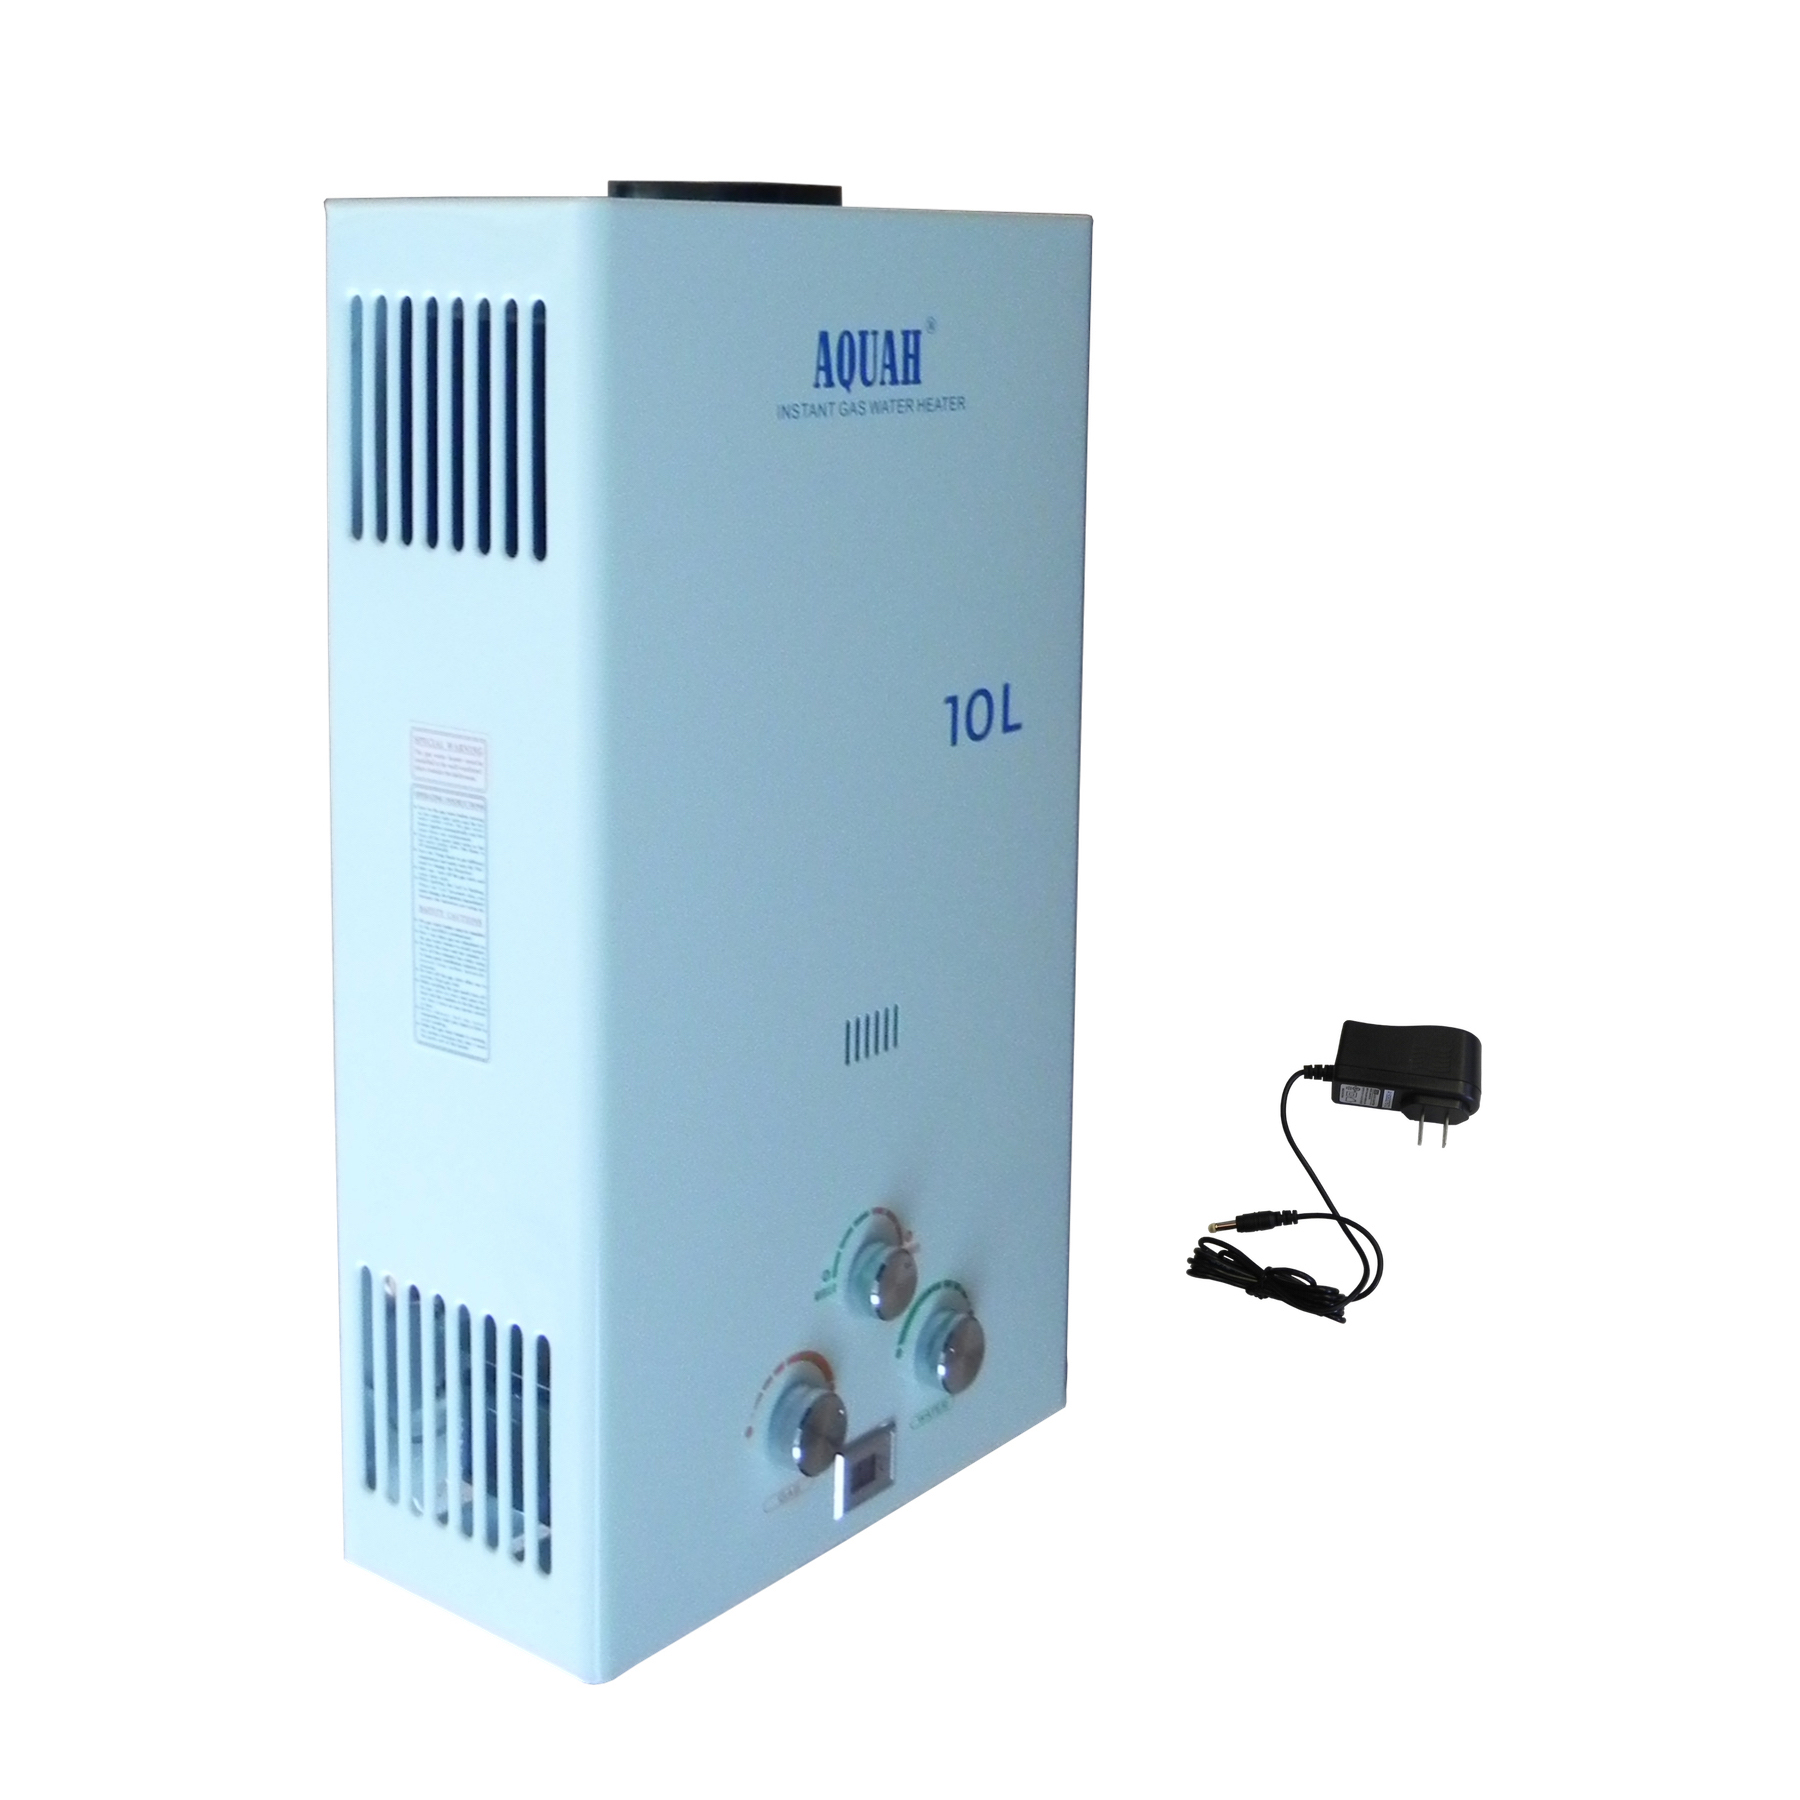 Aquah 10l 2 65 Gpm Natural Gas Tankless Water Heater